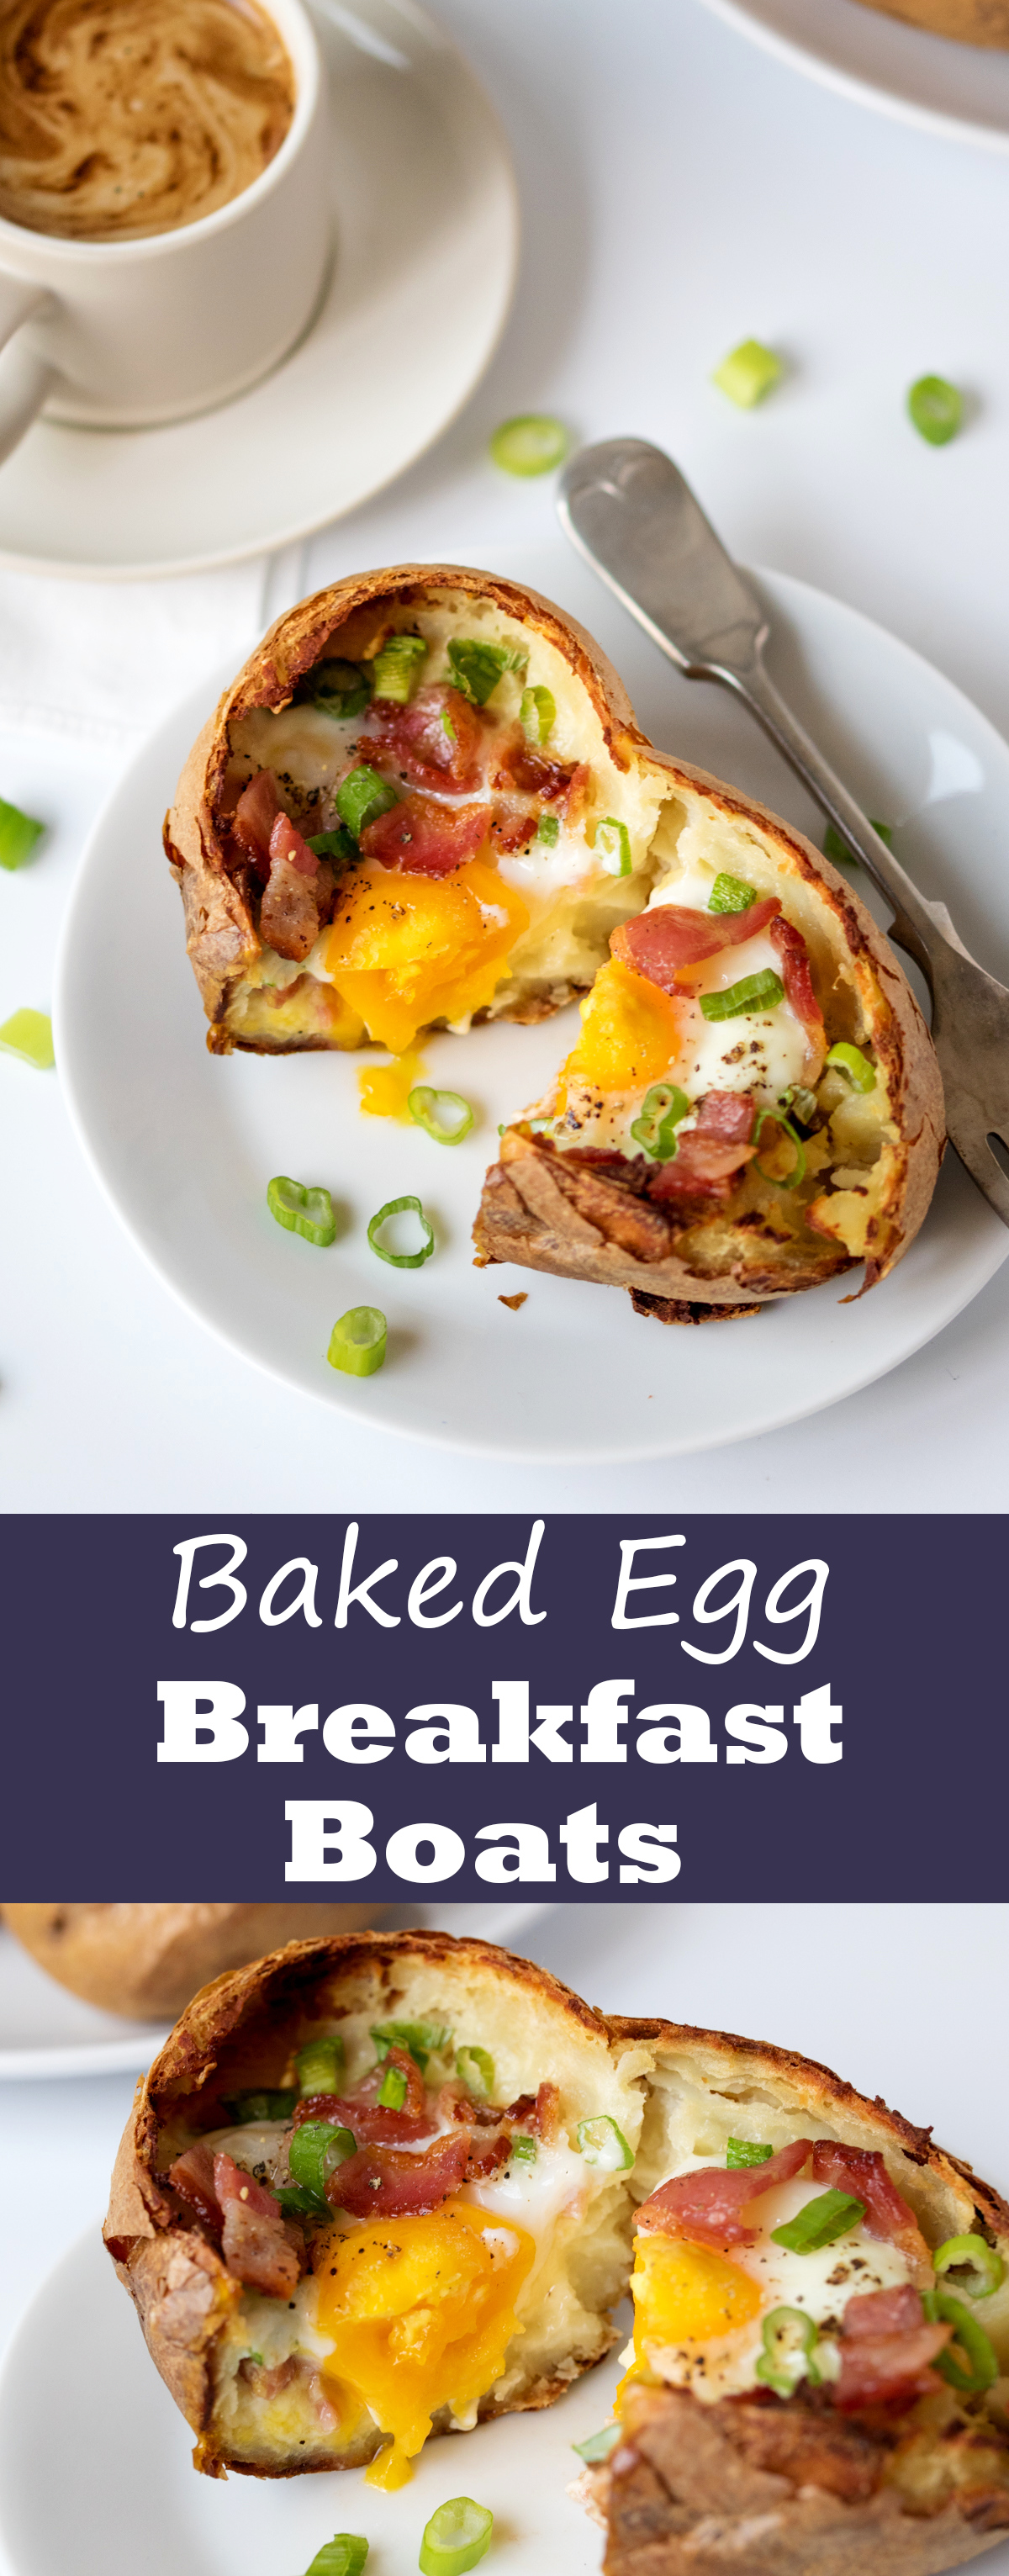 Crispy baked potatoes stuffed with egg and bacon - a delicious breakfast or lunchtime treat!